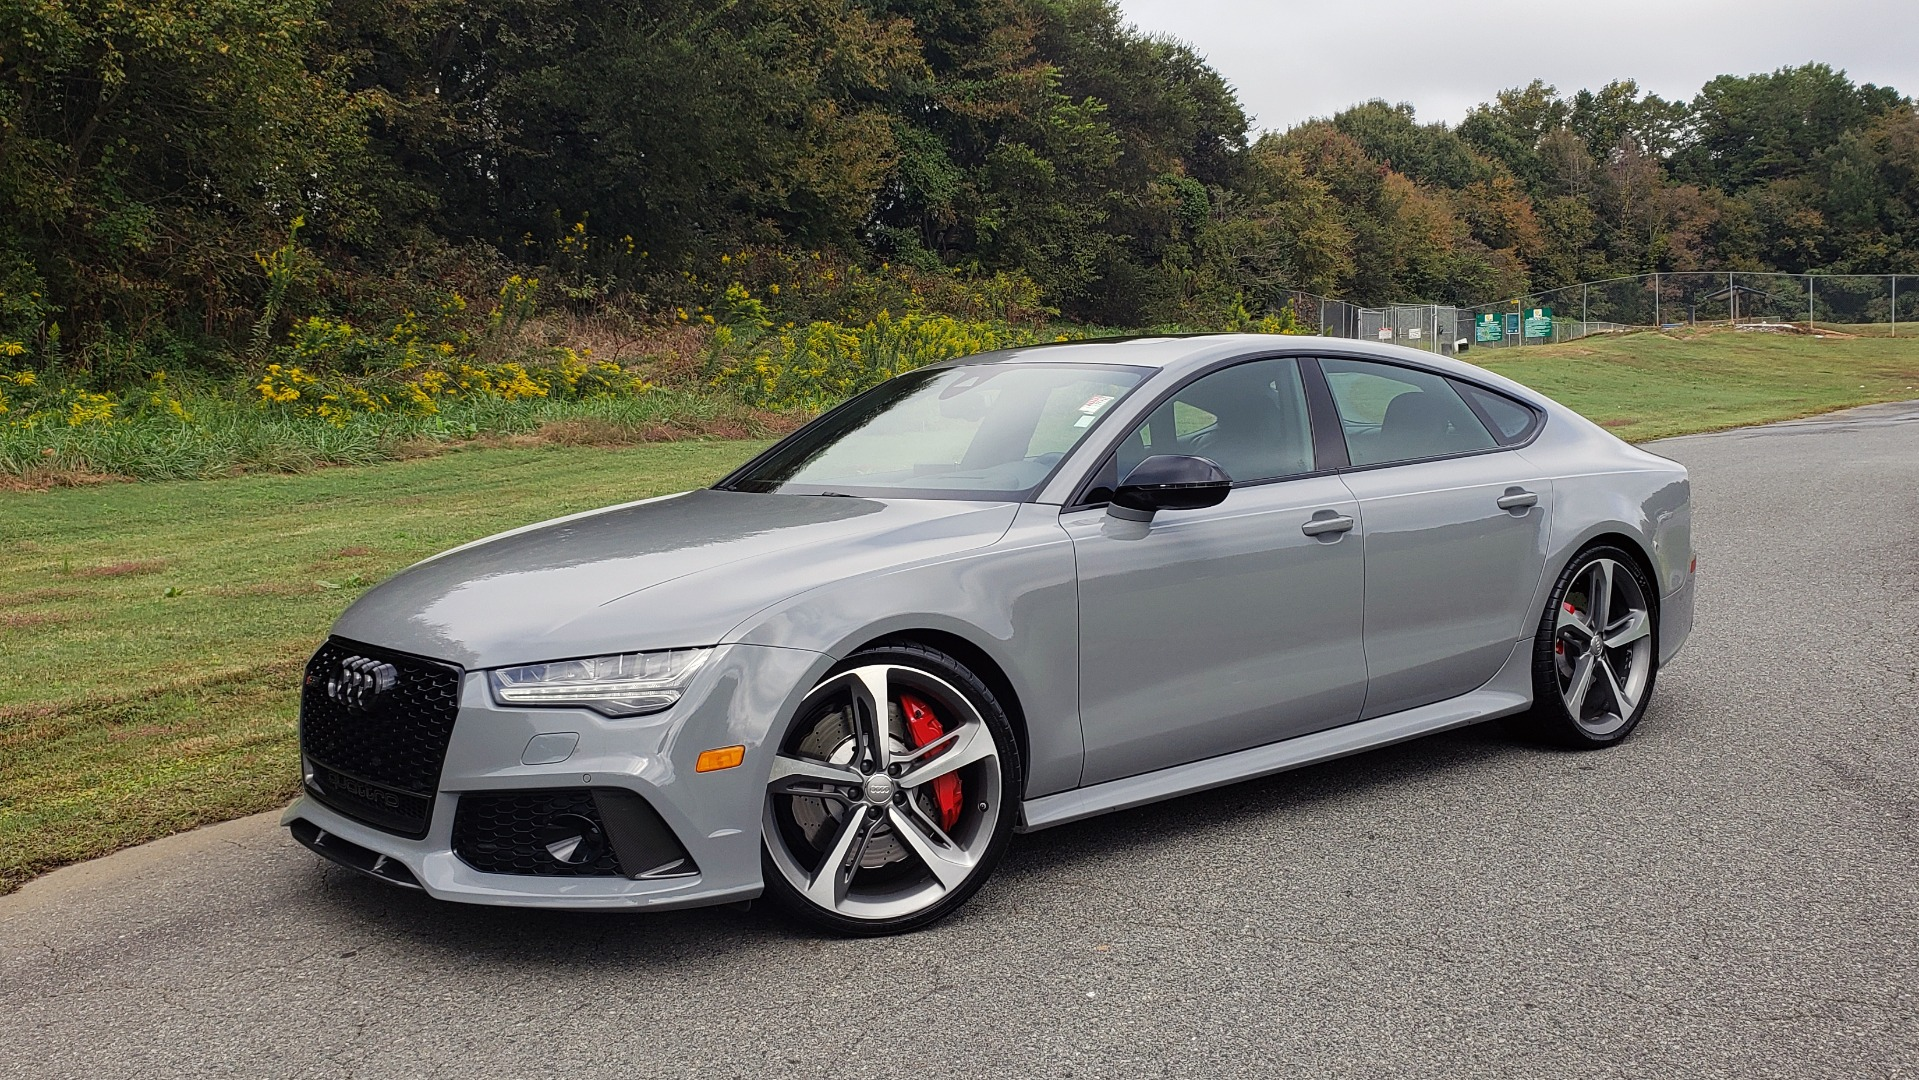 Used 2018 Audi RS 7 4.0T TIPTRONIC / CARBON OPTIC / DRVR ASST / NAV / REARVIEW / 750HP+ for sale Sold at Formula Imports in Charlotte NC 28227 2